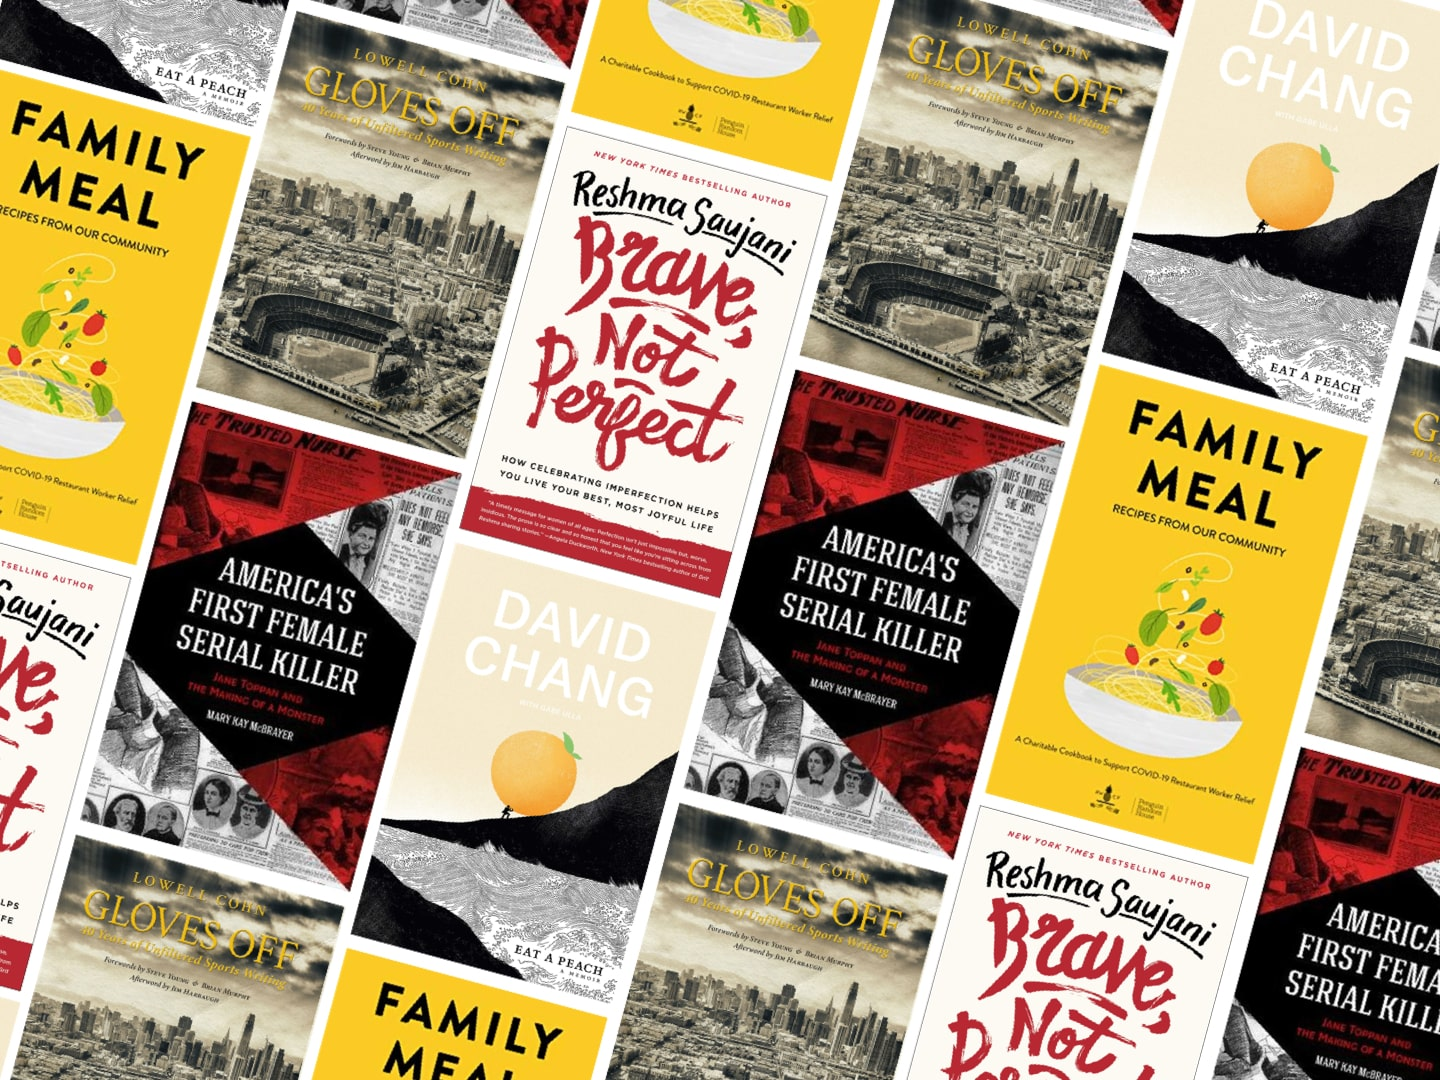 graphic layout of multiple book covers